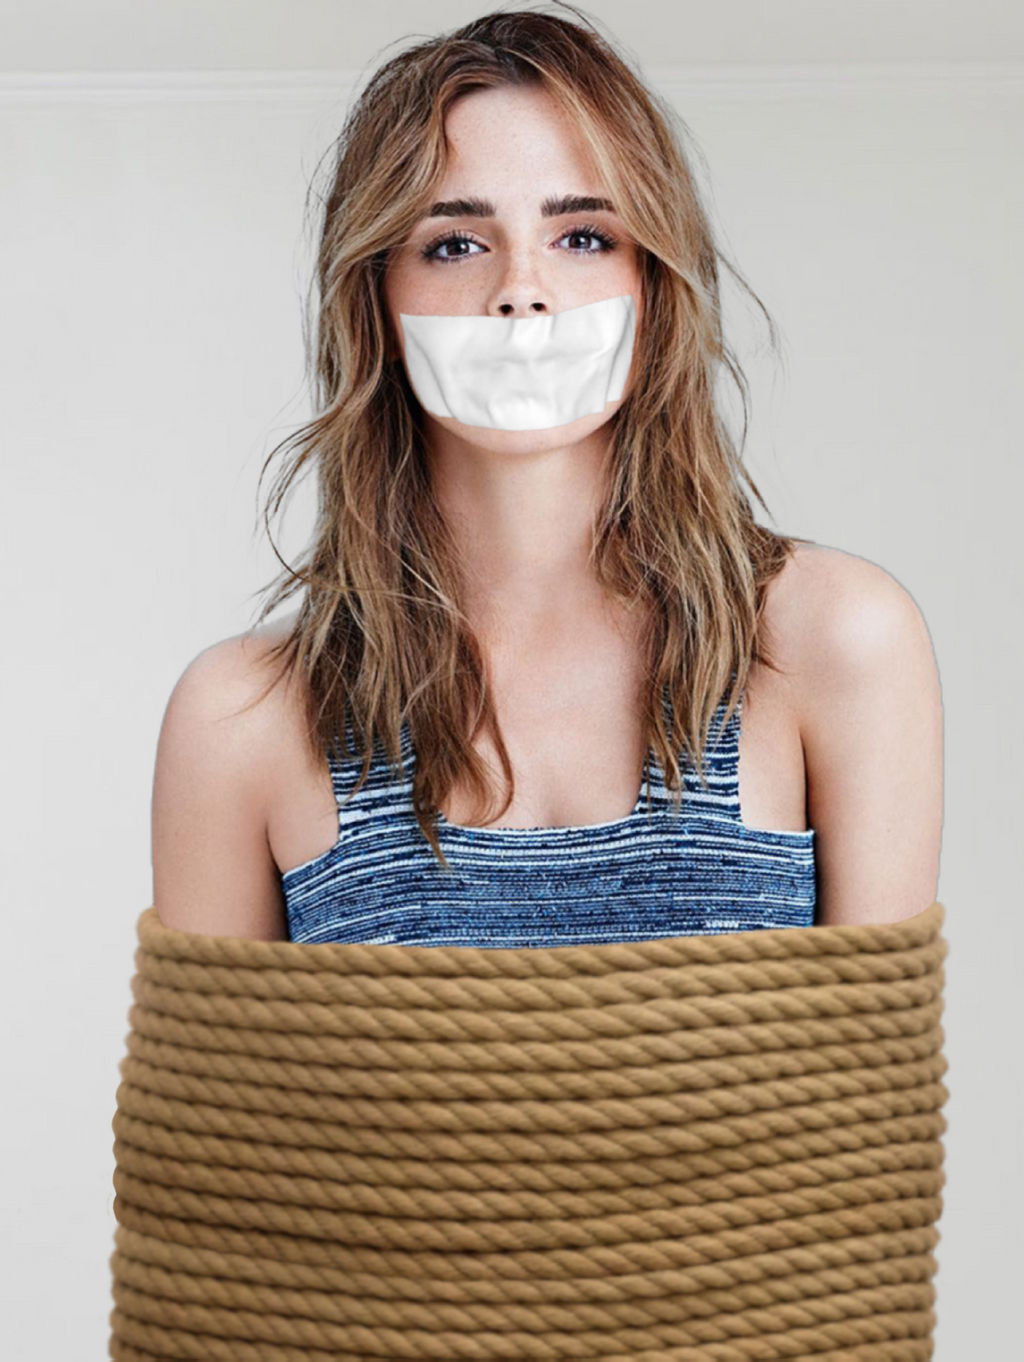 Emma Watson Rope Tied Tape Gagged by Goldy0123 on DeviantArt